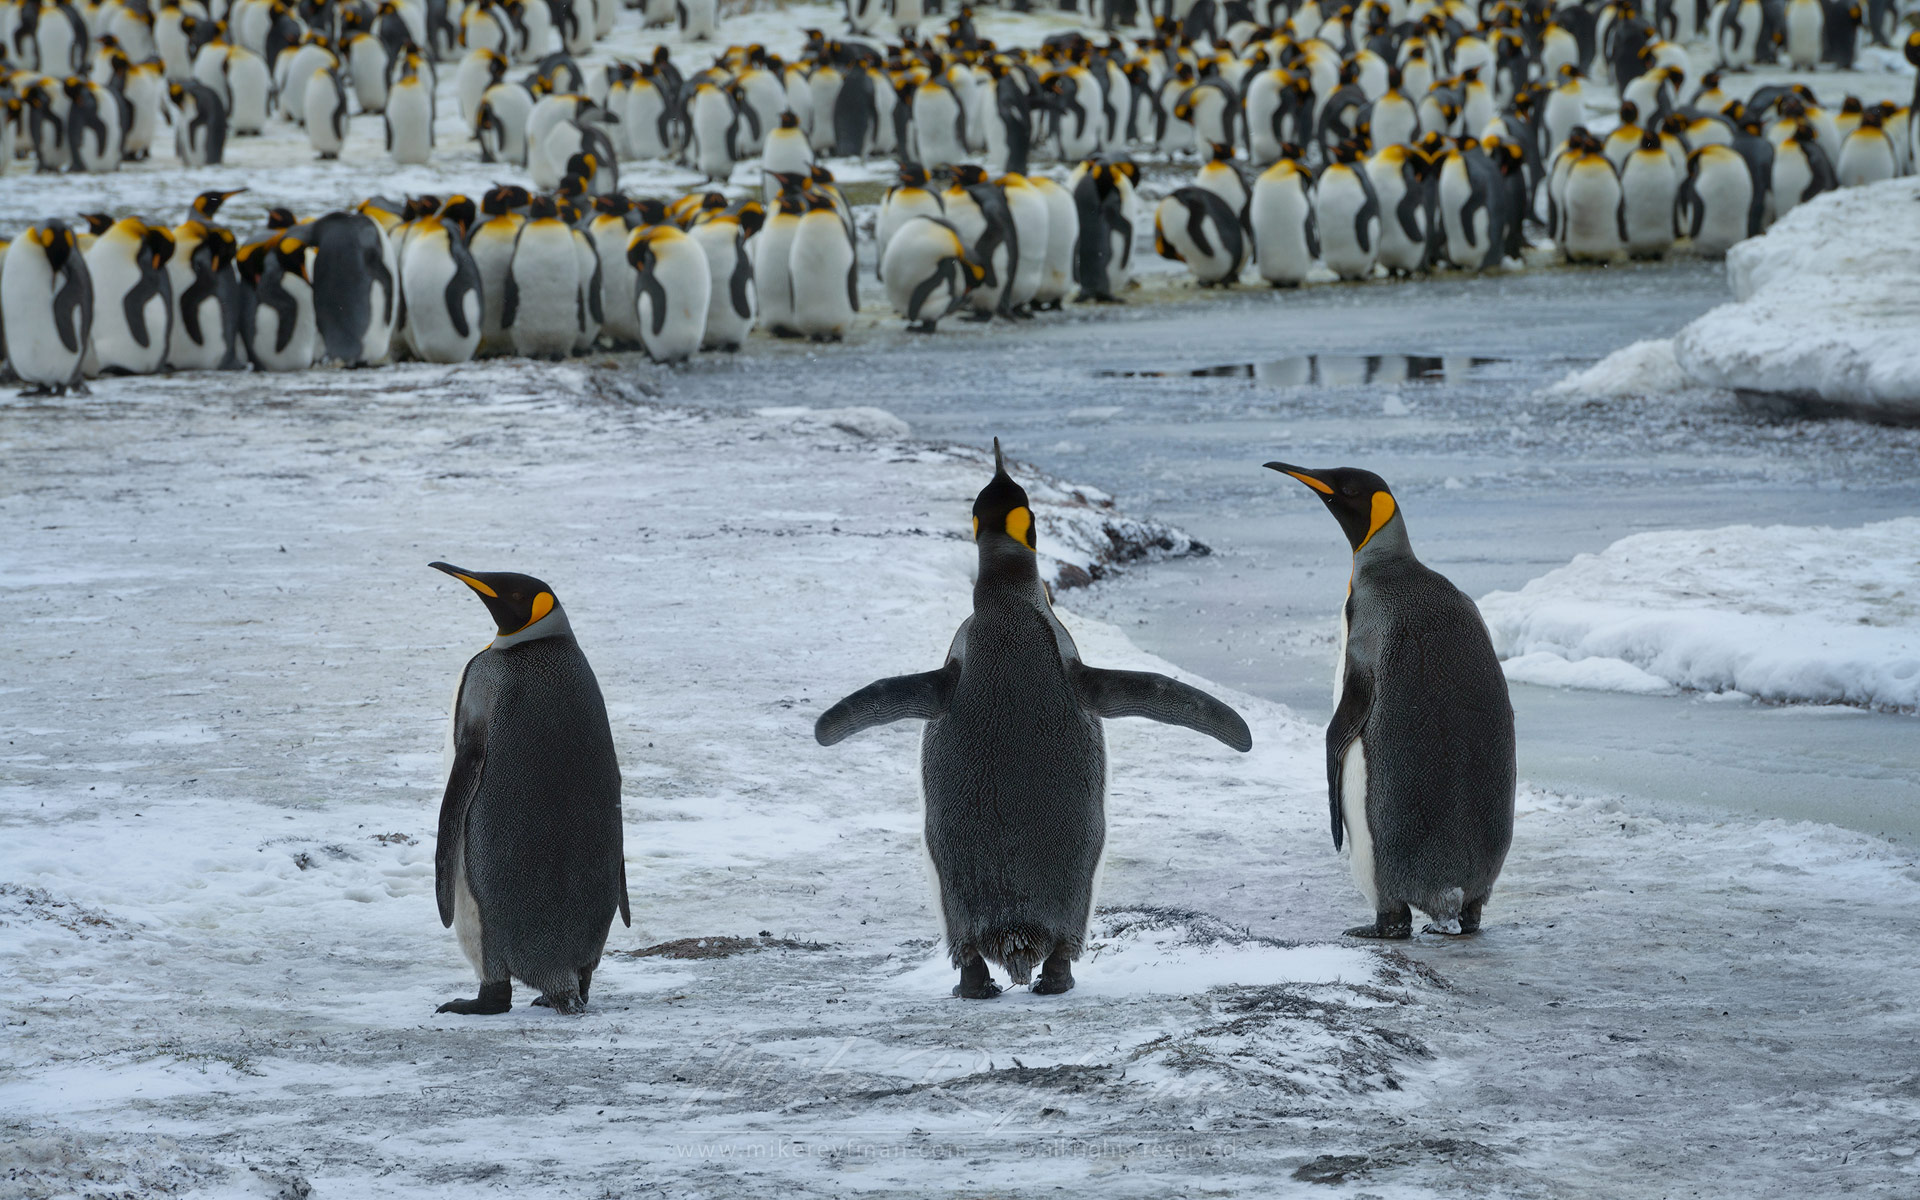 Kingsland. King Penguins (Aptenodytes patagonicus), Salisbury Plain, South Georgia, Sub-Antarctic - King-Penguins-South-Georgia-Sub-Antarctic - Mike Reyfman Photography